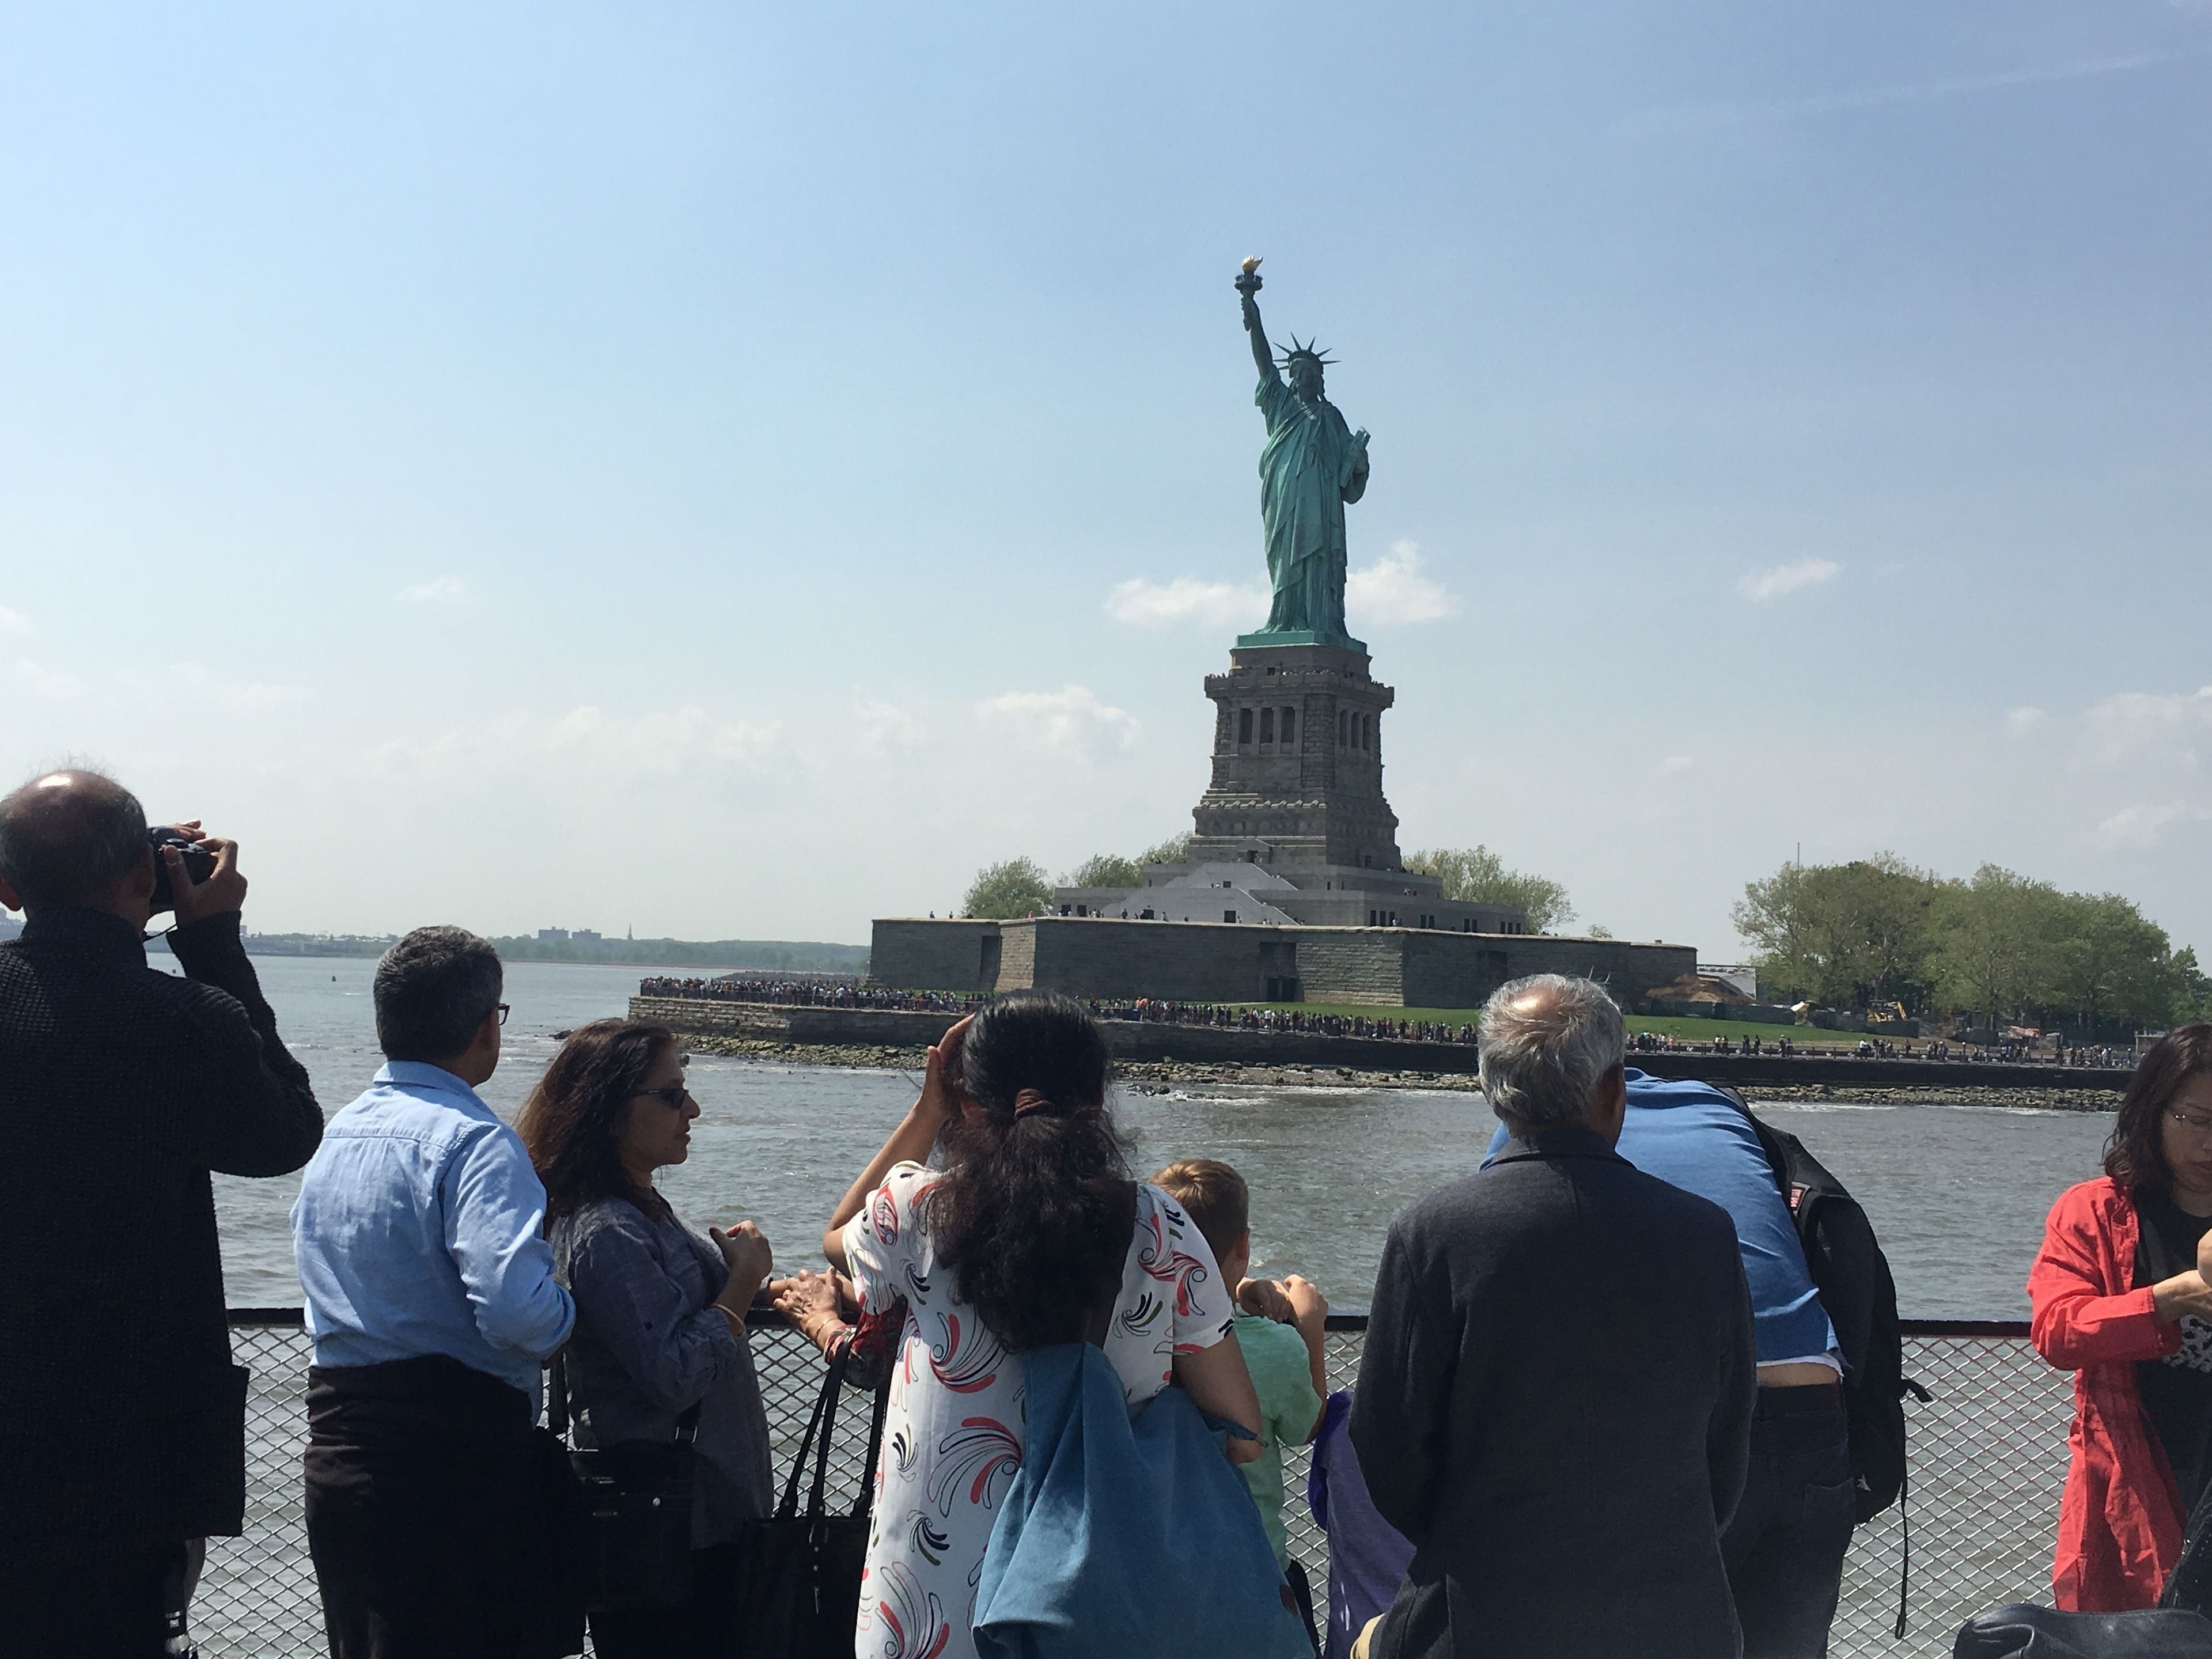 Boat tour next to Statue of Liberty